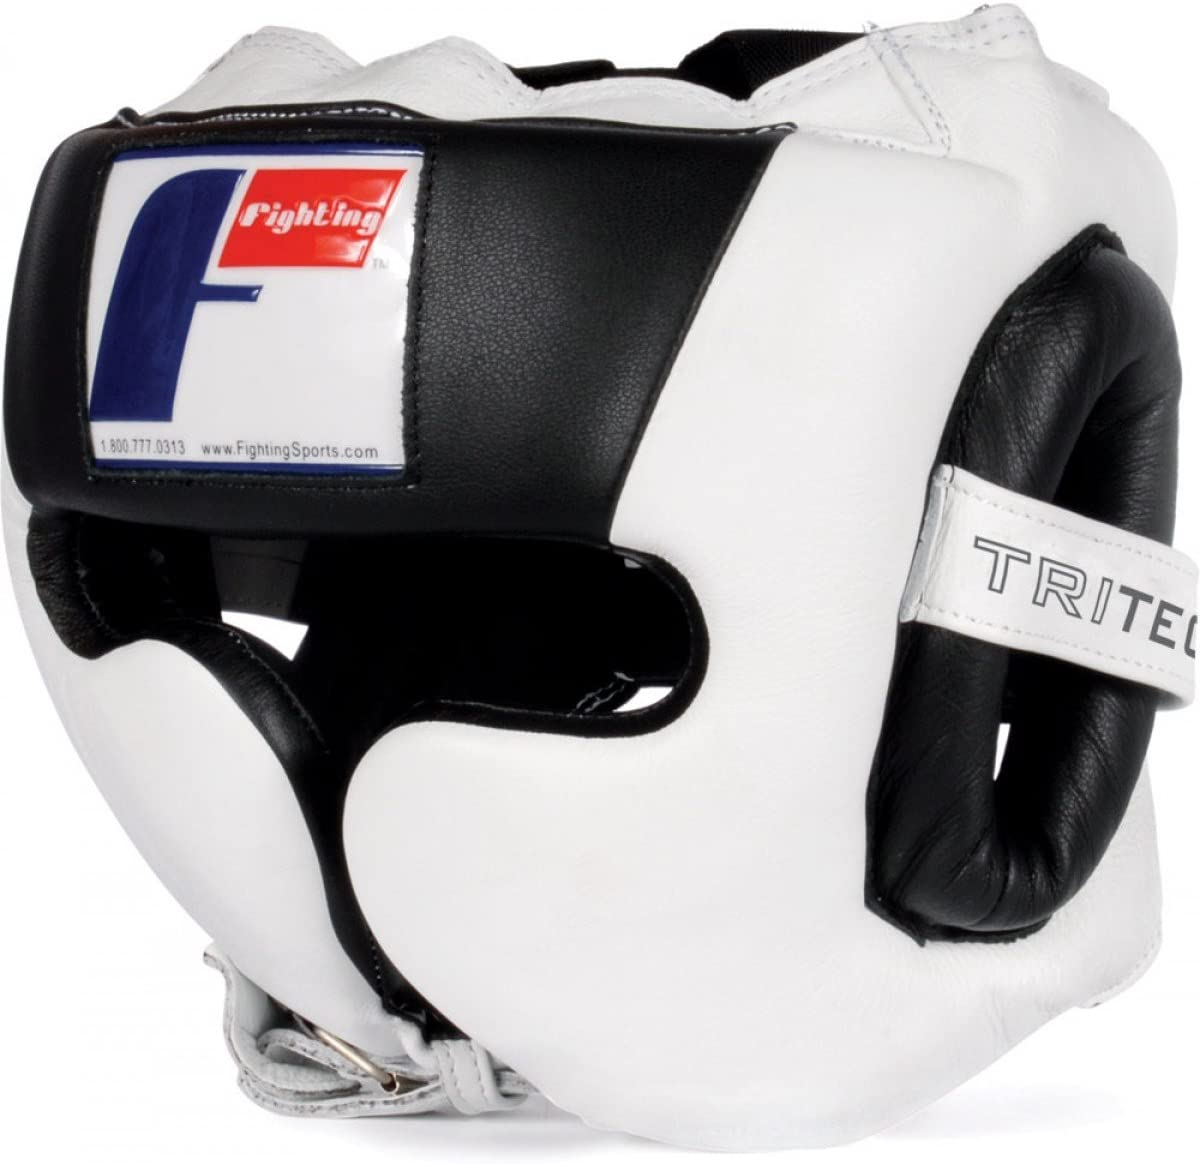 Fighting Great interest Sports Tri-Tech Headgear Training Large discharge sale